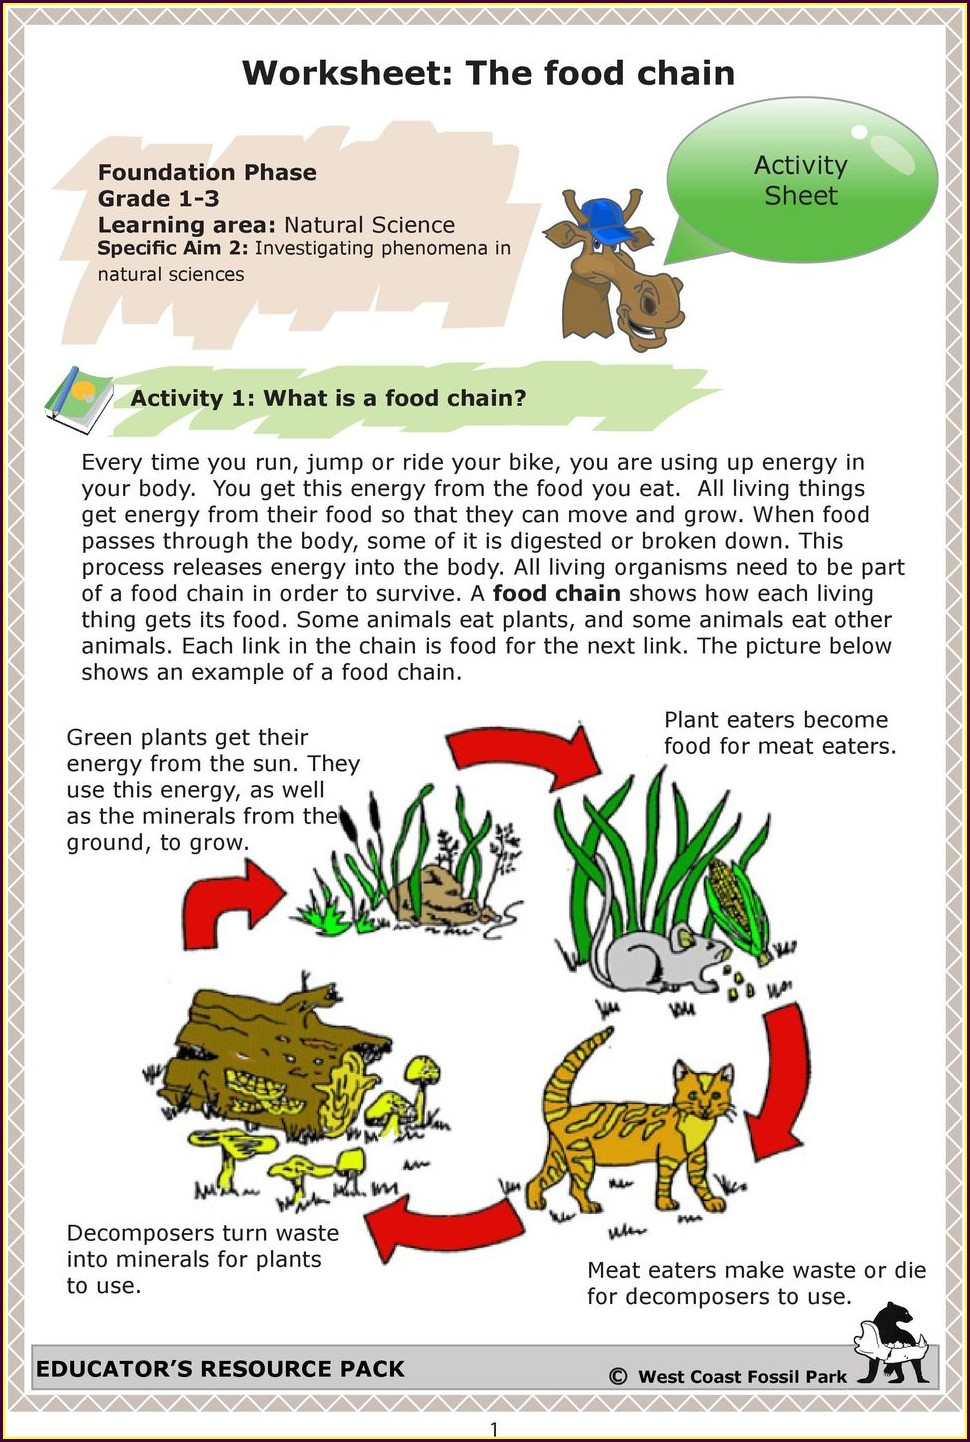 Worksheet On Food Chain For Grade 7